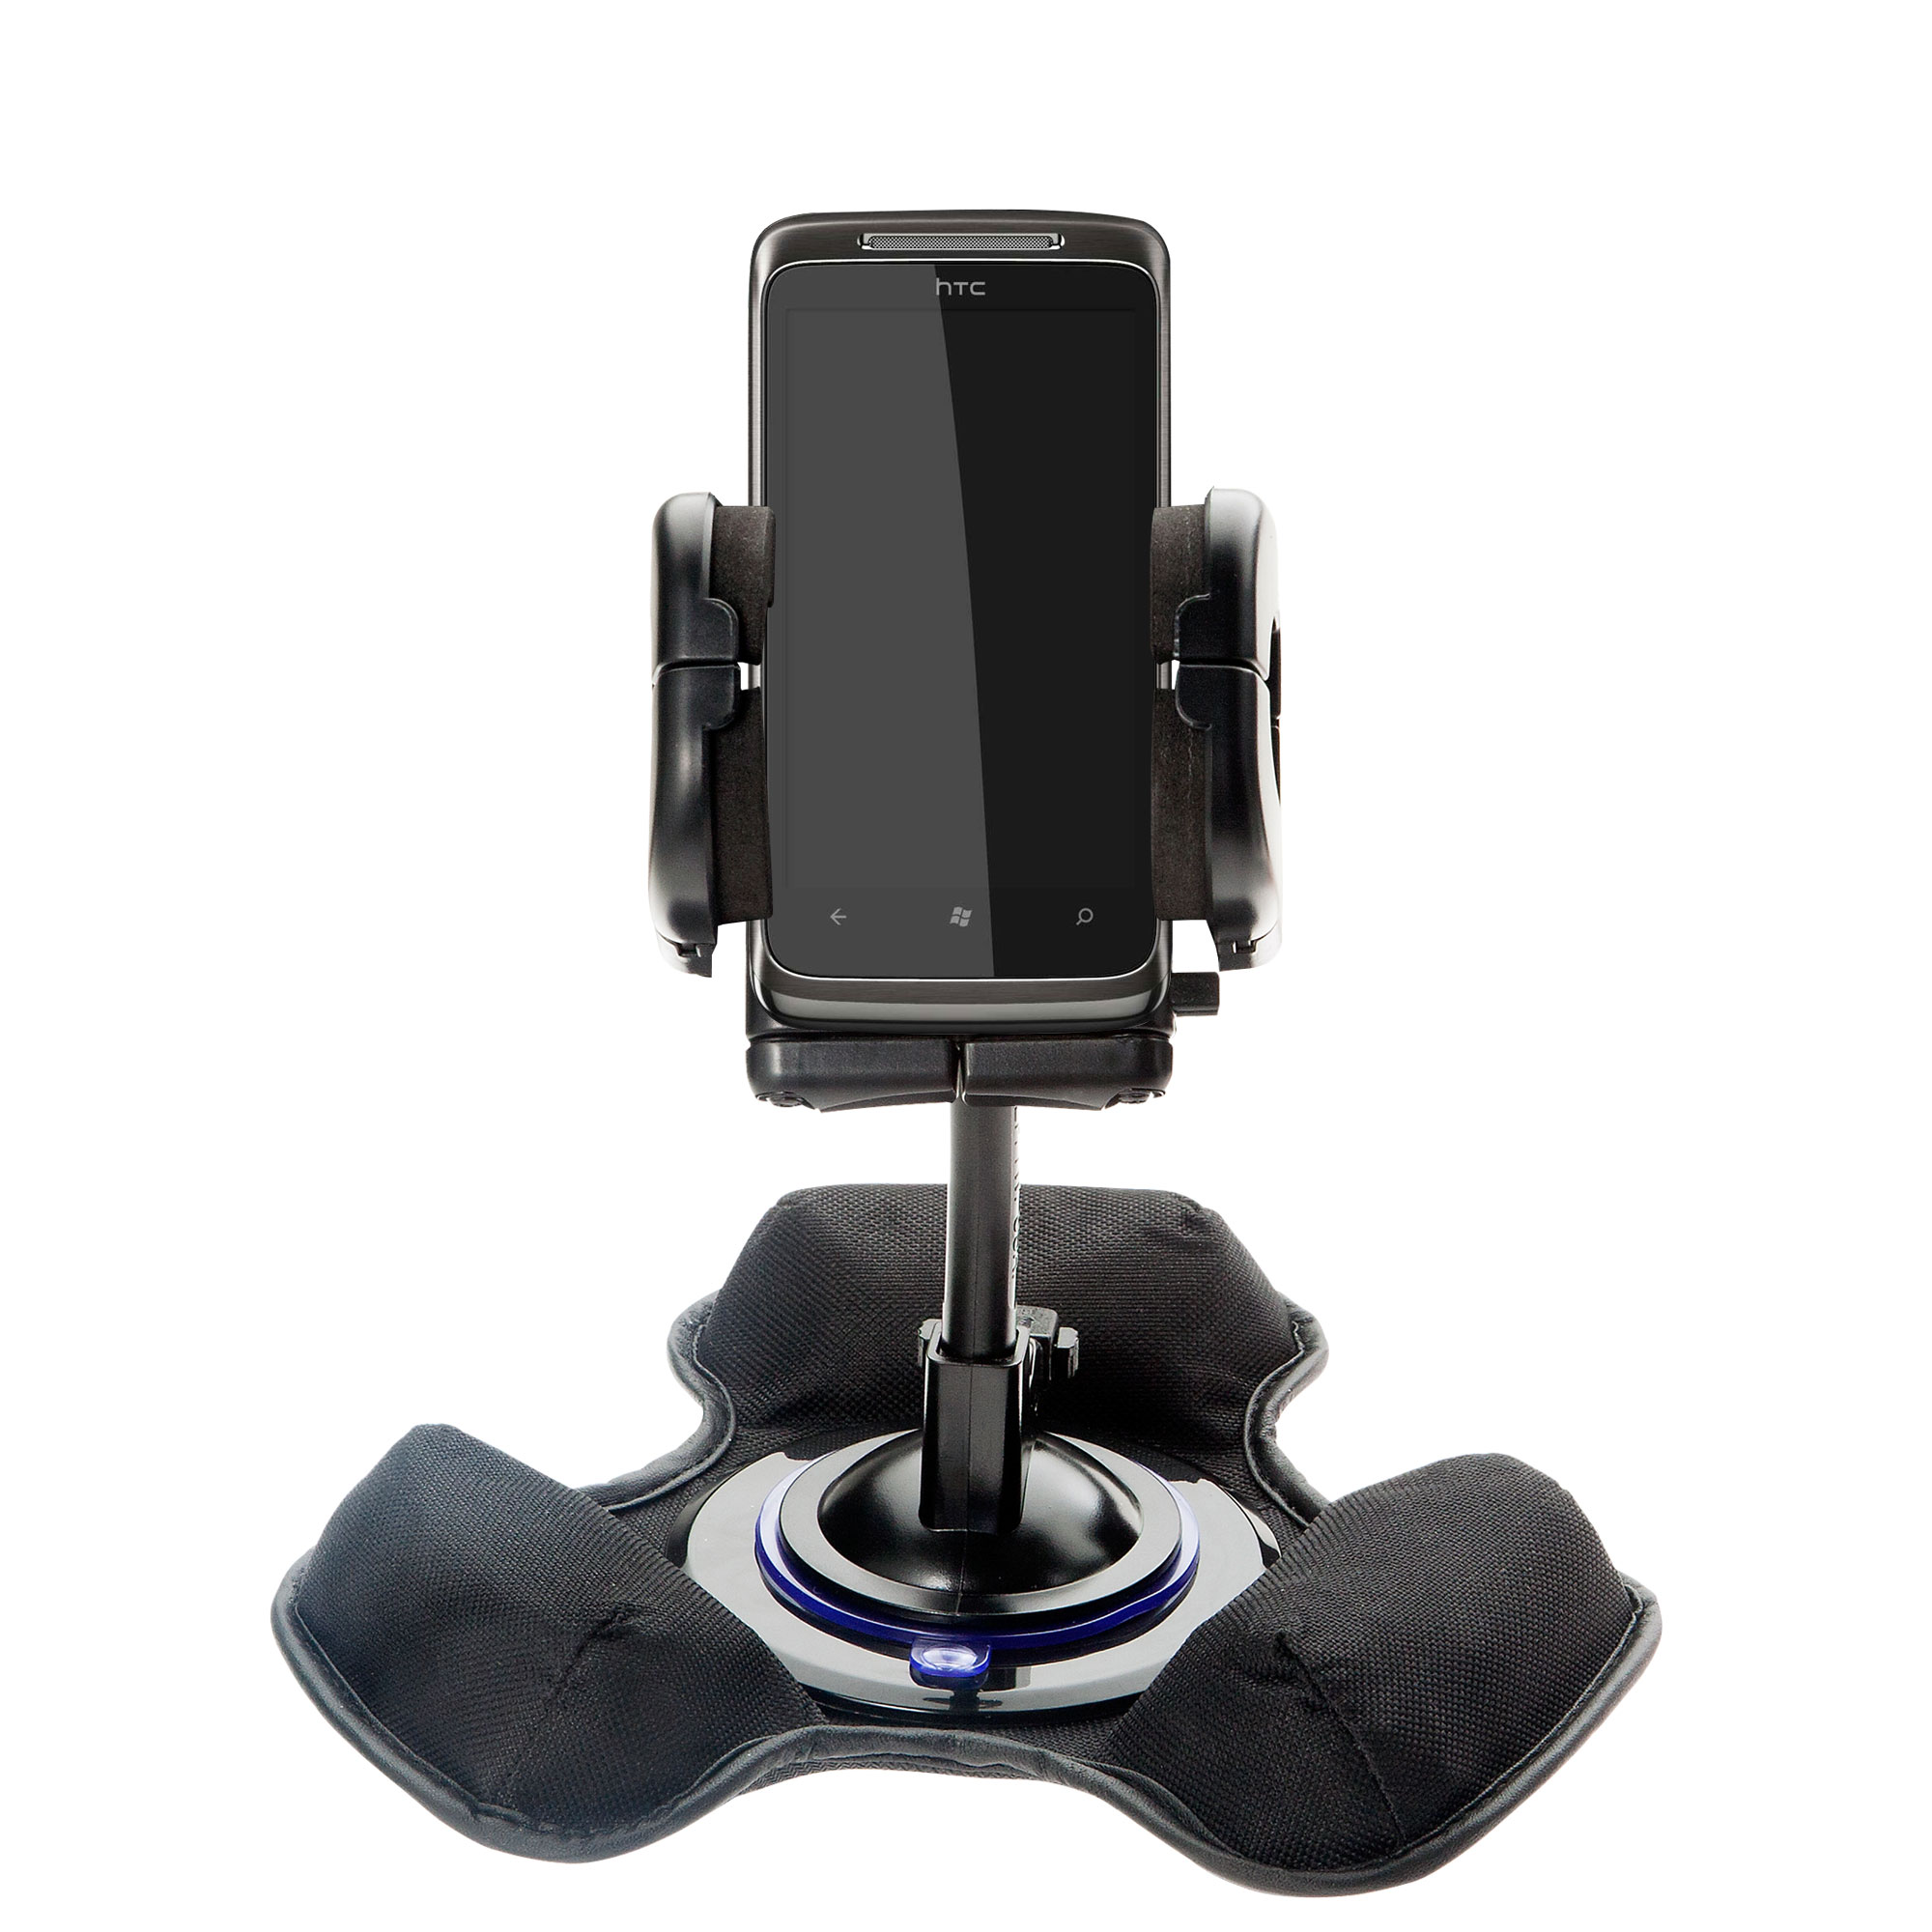 Dash and Windshield Holder compatible with the HTC HTC 7 Surround